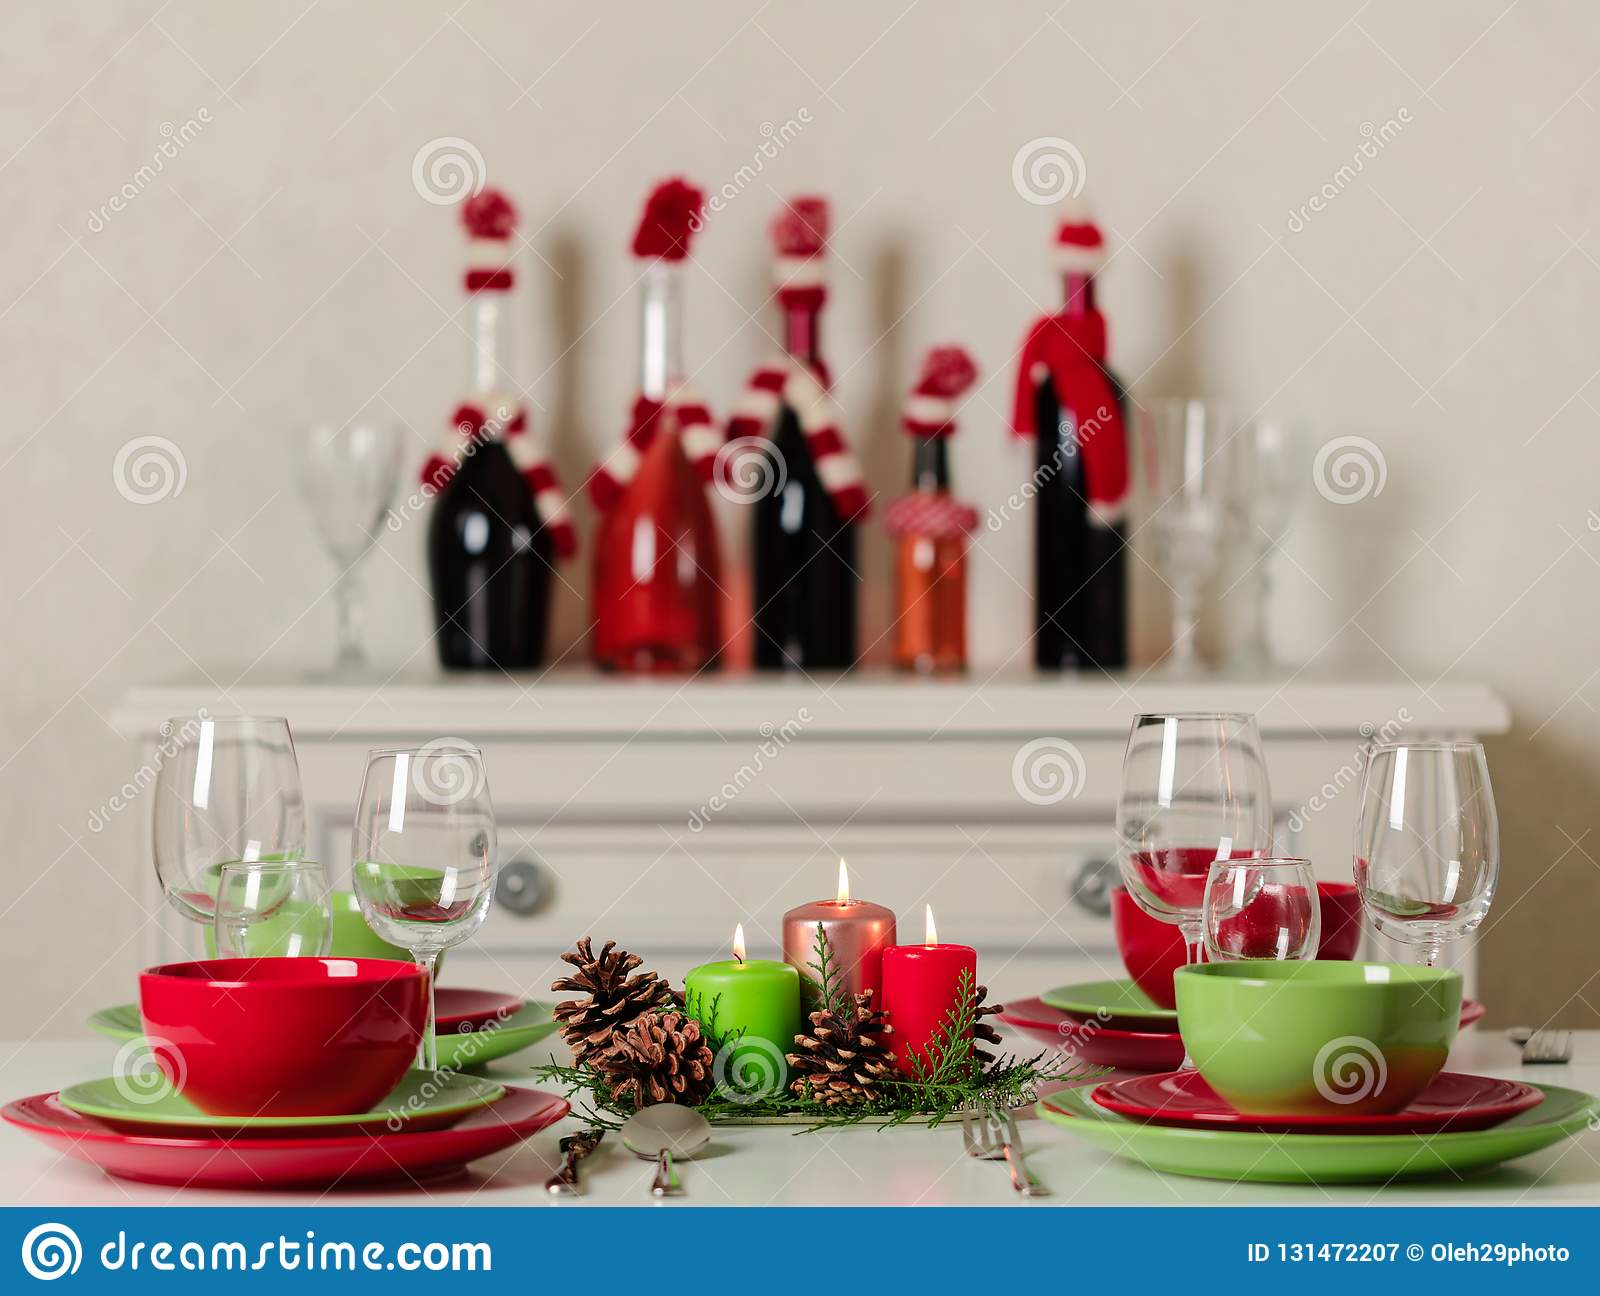 Merry Christmas and Happy New Year! Тable setting festive decor - green and red dishes, candles and fir cones. Knitted decor -